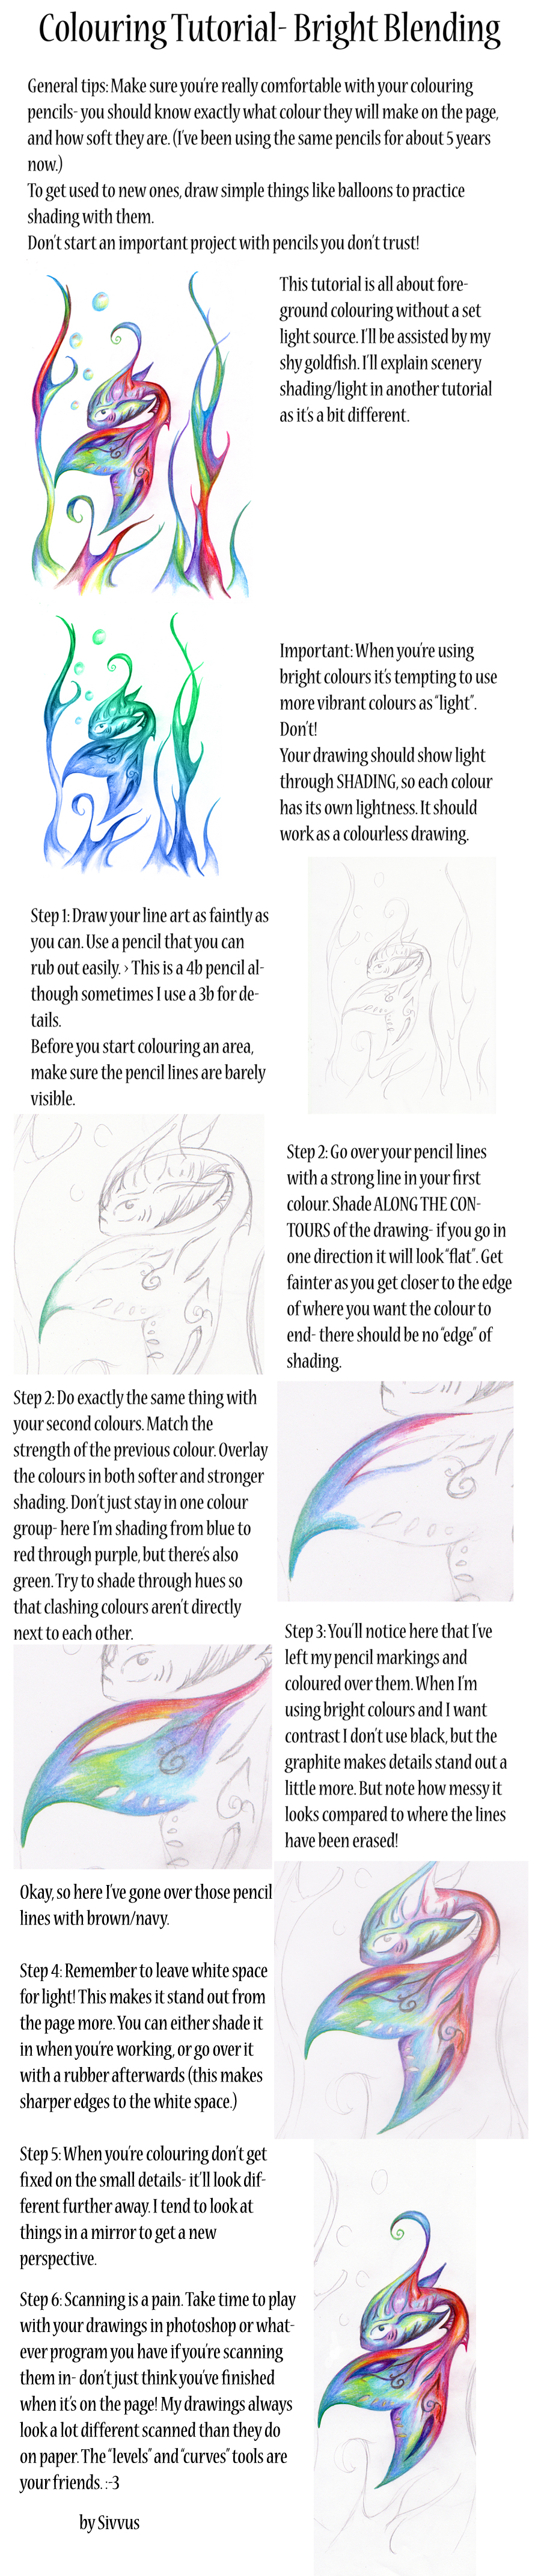 Traditional Colouring Tutorial by sivvus